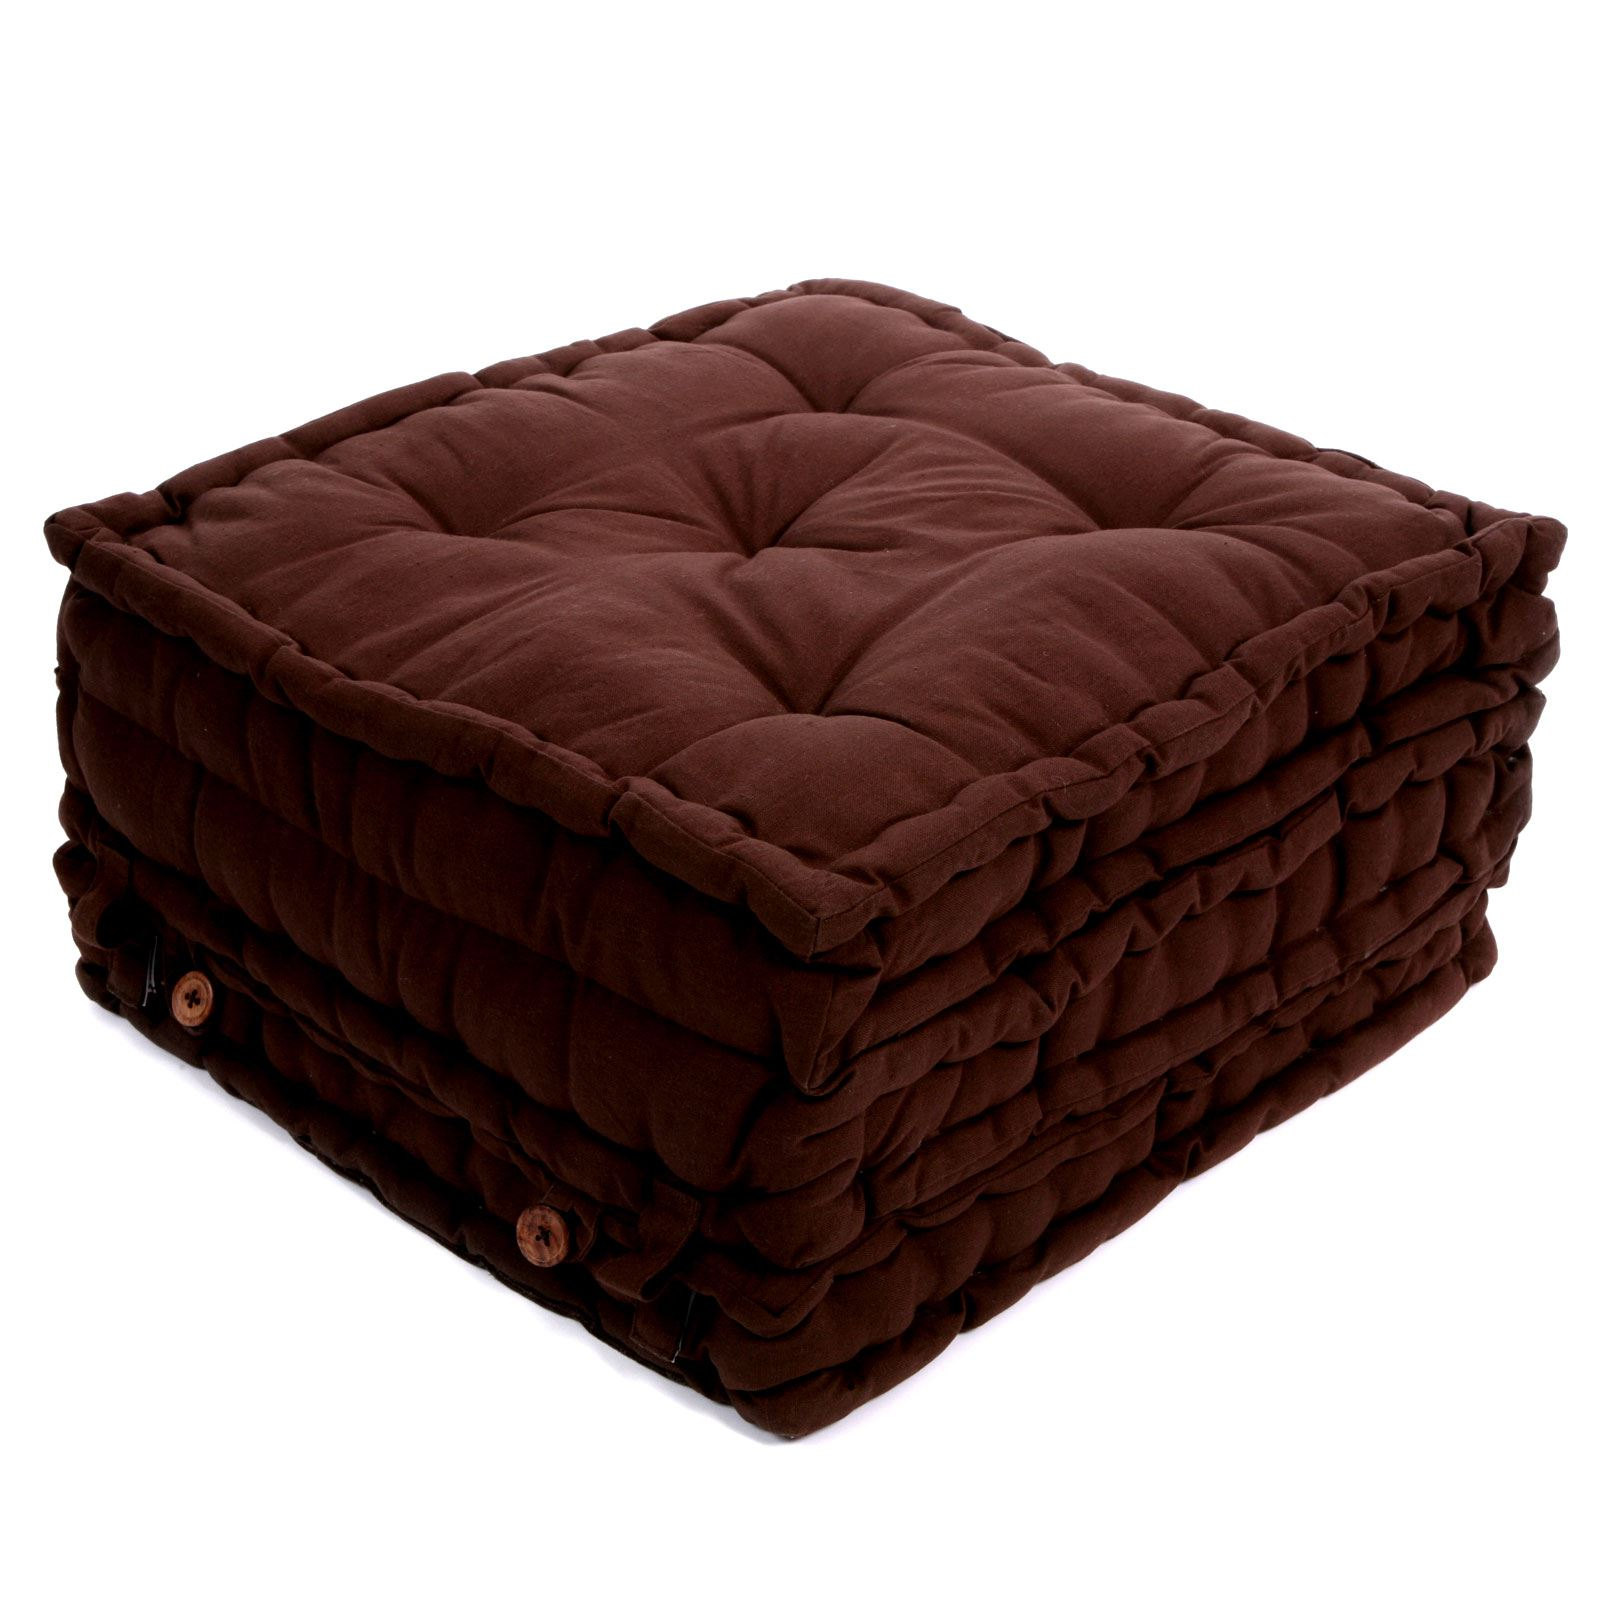 home spirit geisha coussin de sol d pliant choco 50x50x30 brandalley. Black Bedroom Furniture Sets. Home Design Ideas